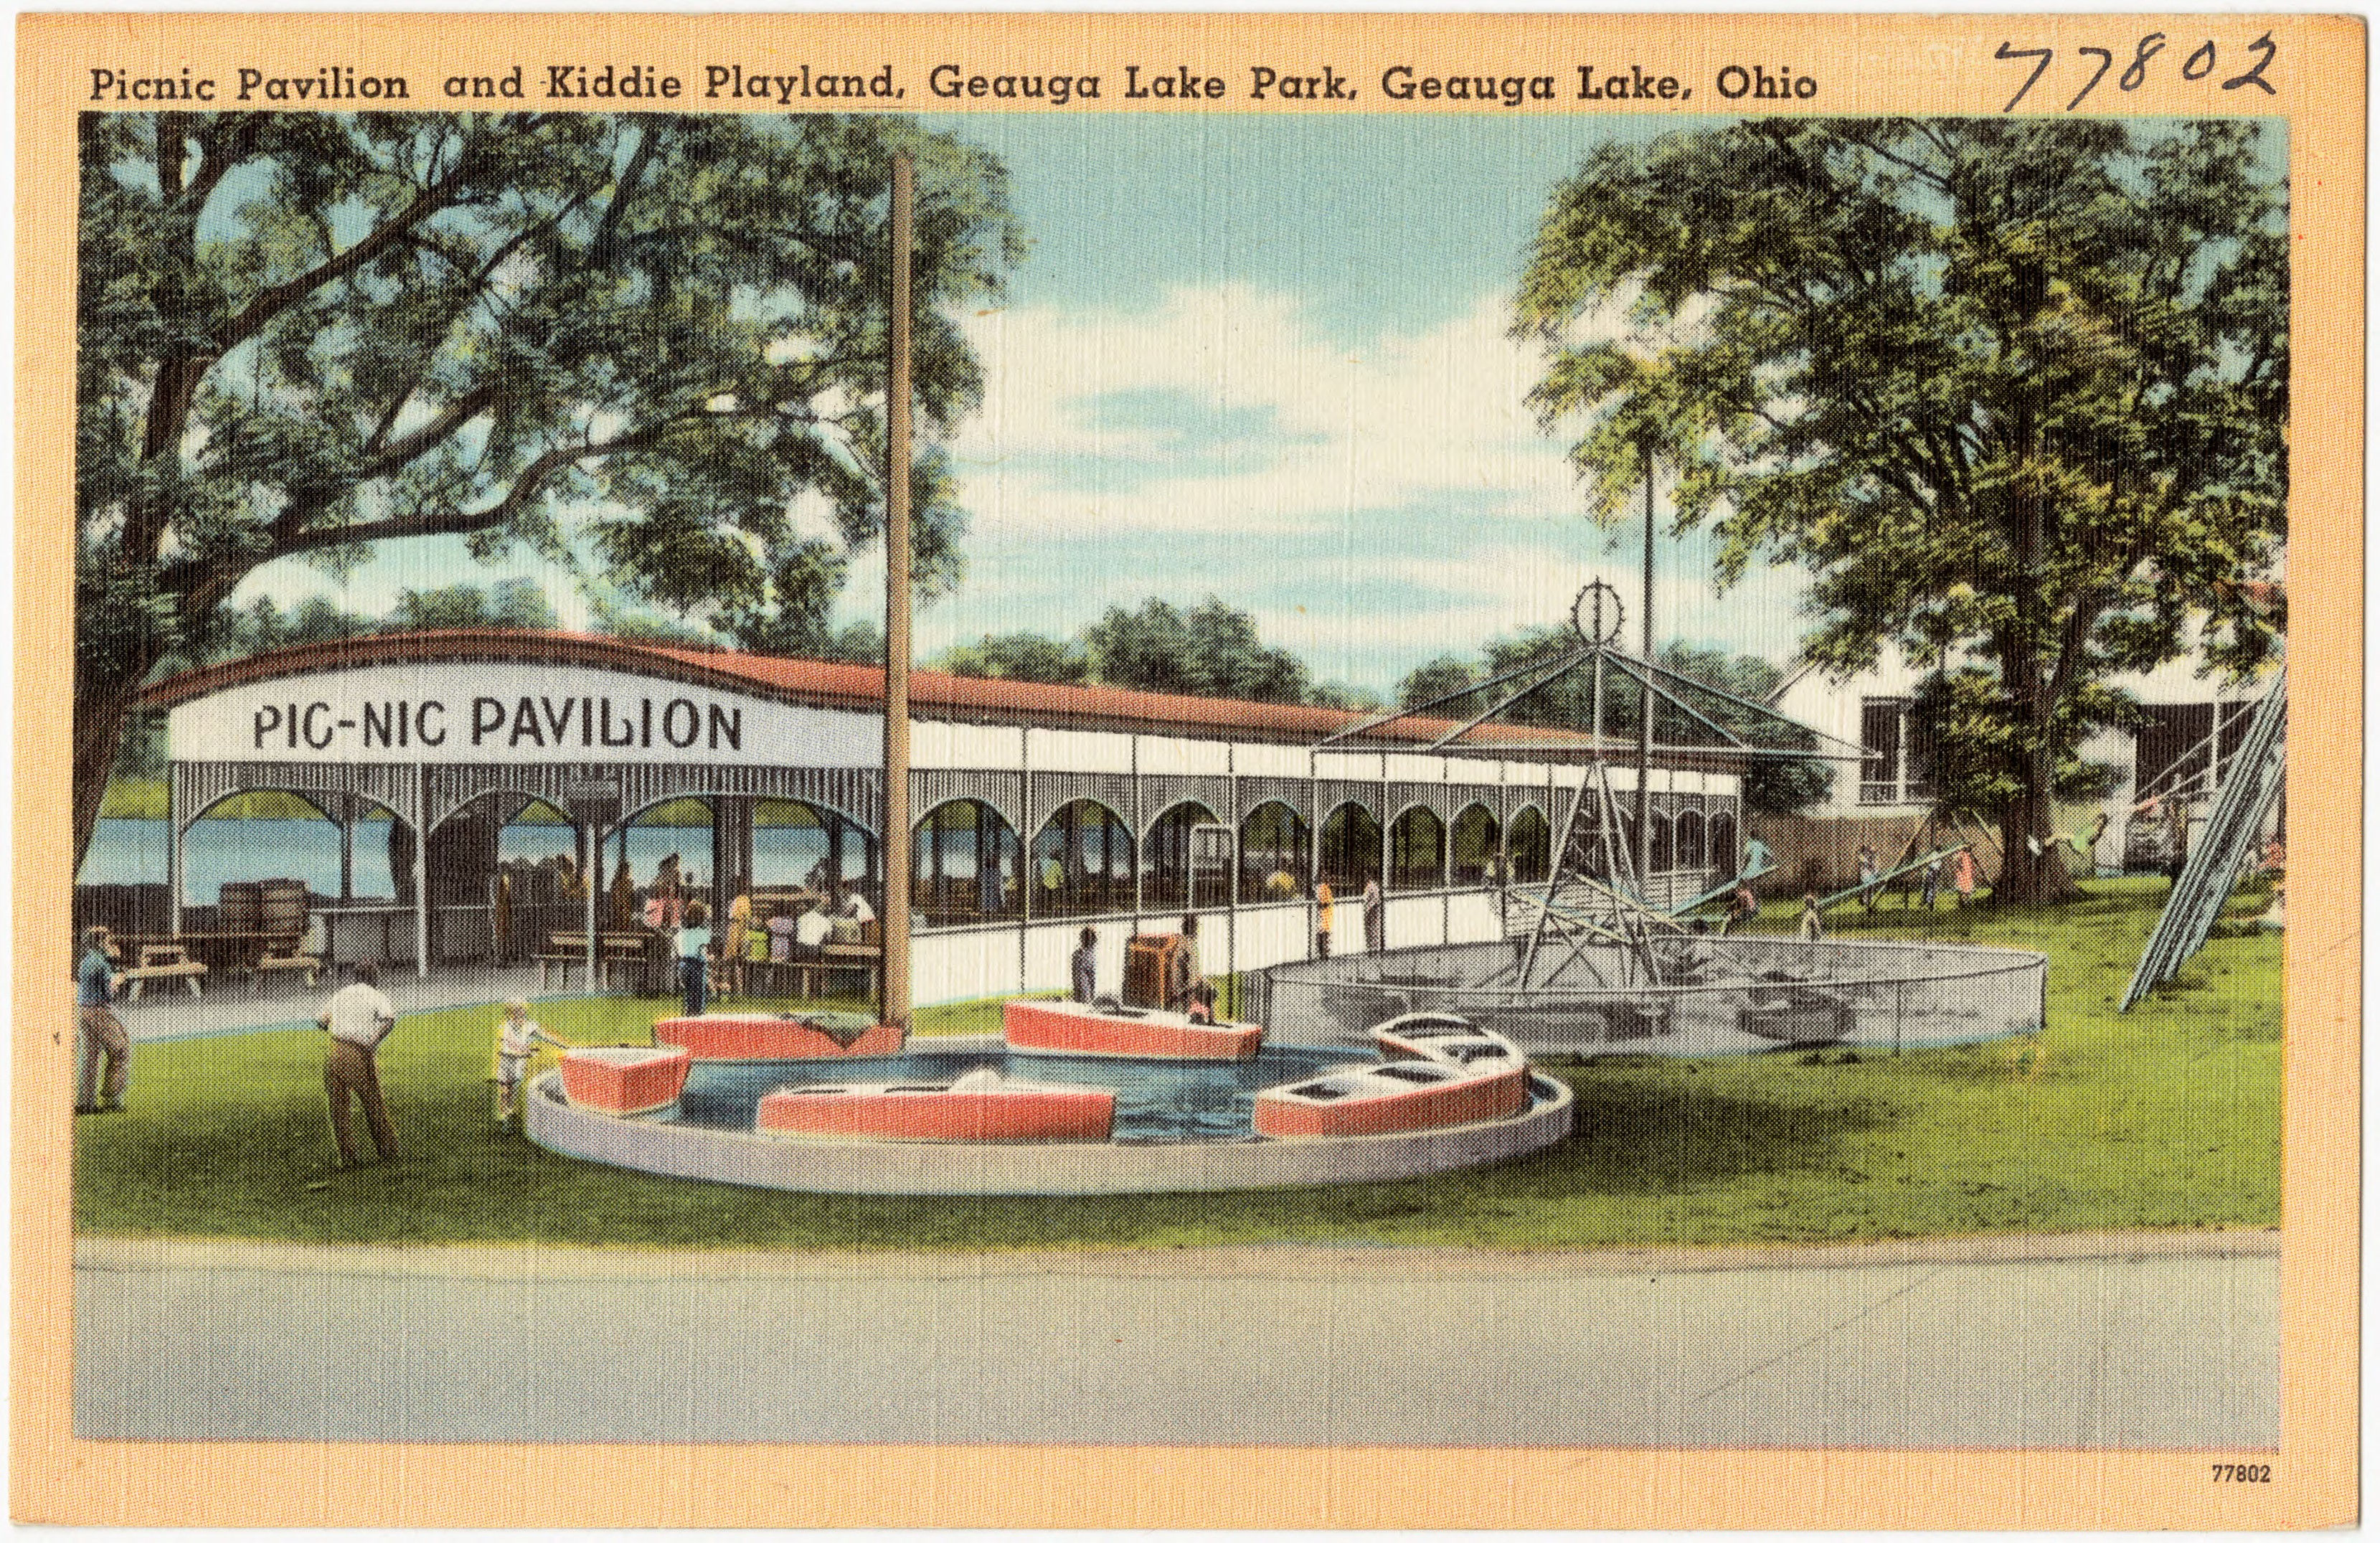 File:Picnic Pavilion and Kiddie Playland, Geauga Lake Park, Geauga